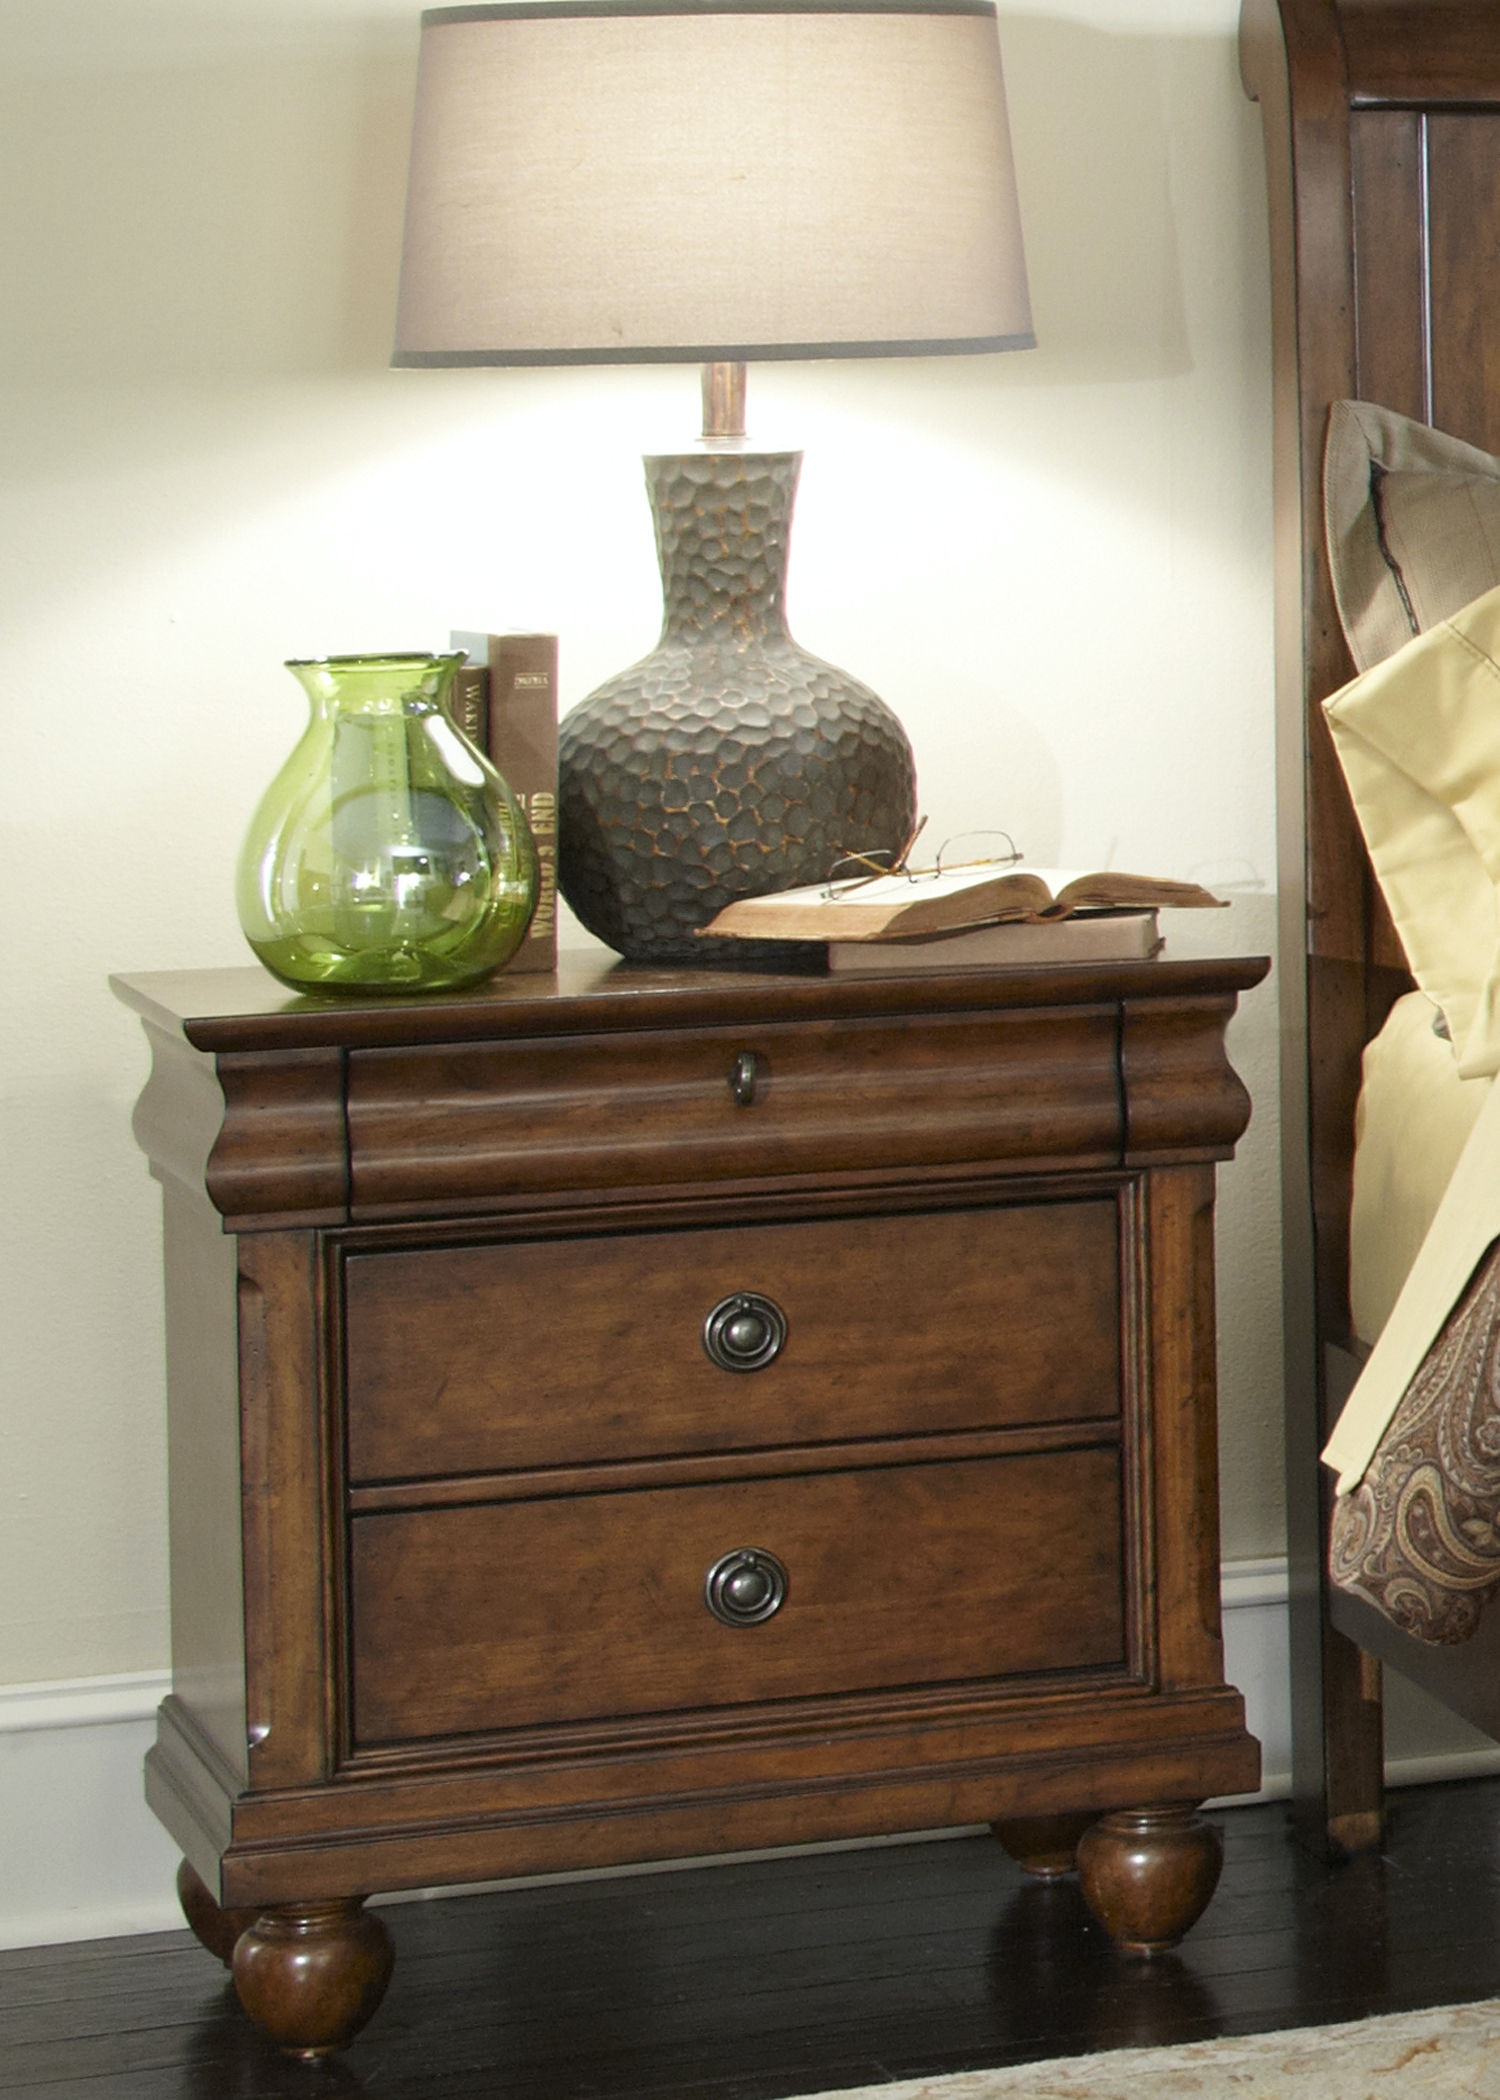 Ordinaire Liberty Furniture Bedroom Night Stand